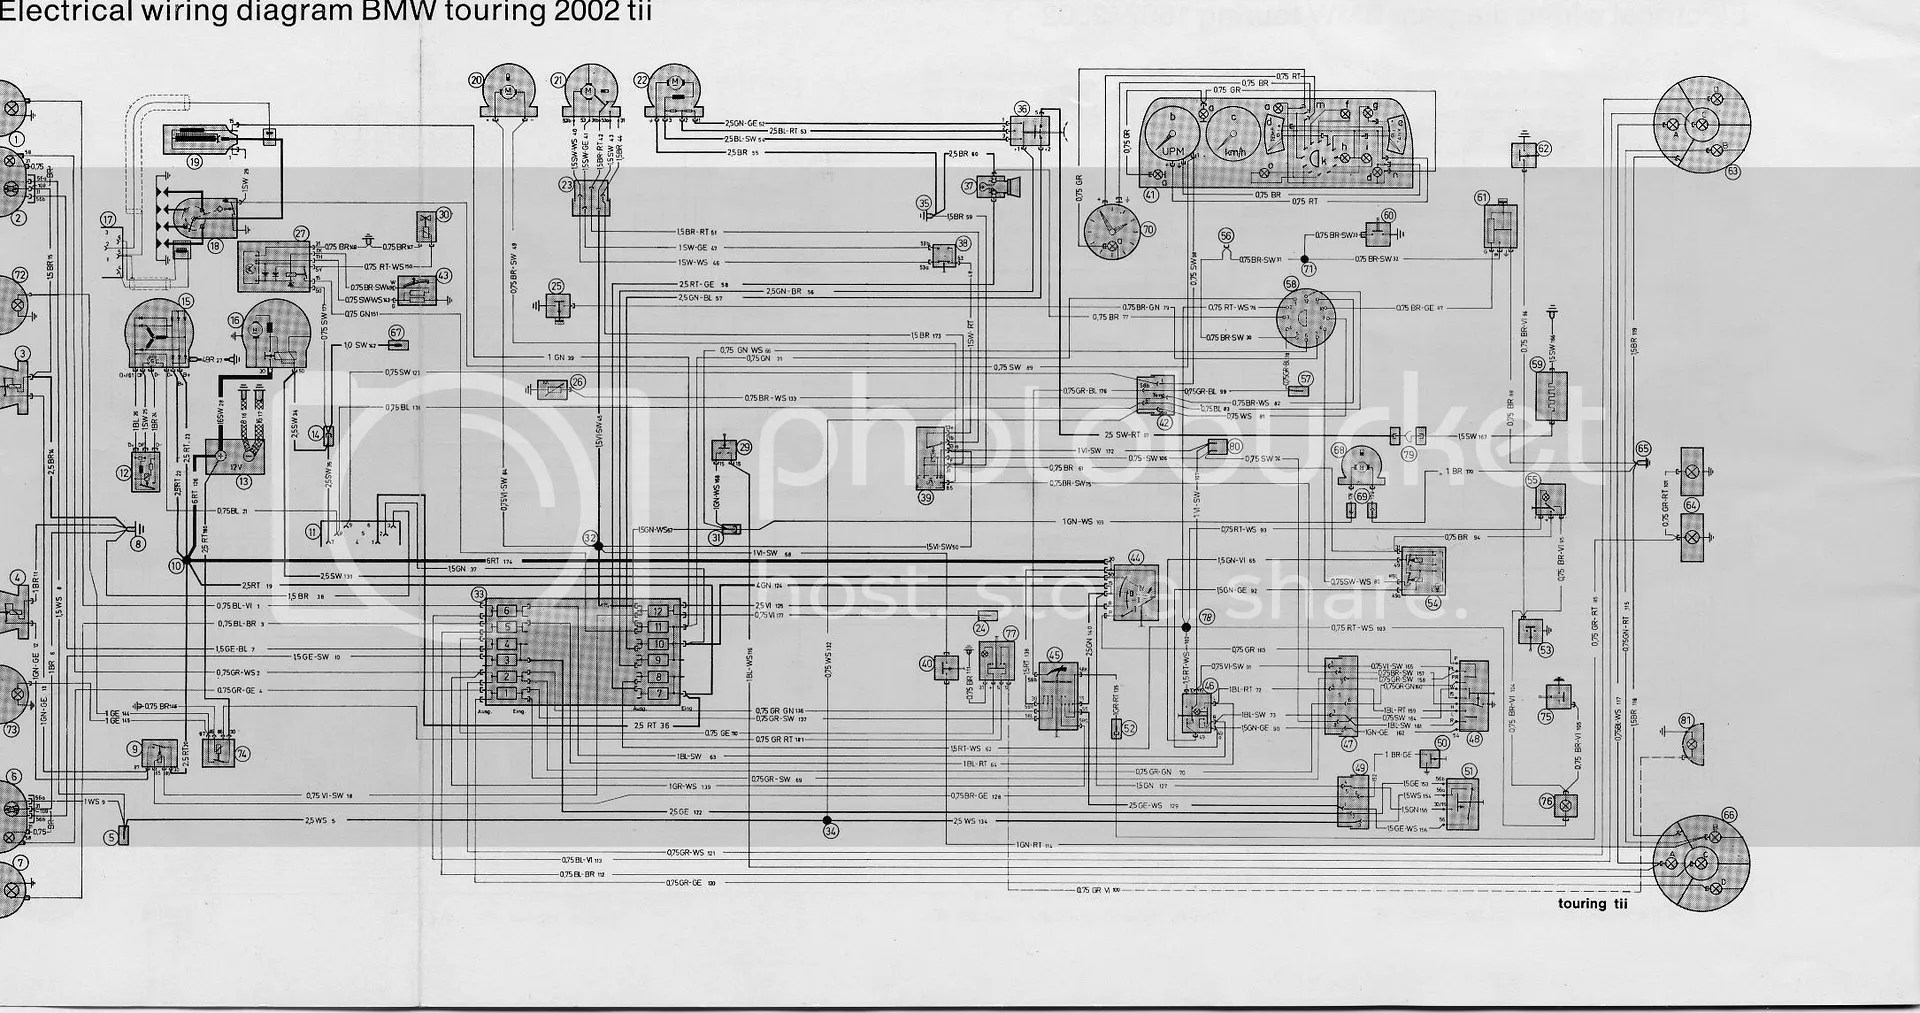 bmw e46 radio wiring diagram of three way light switch diagrams get free image about